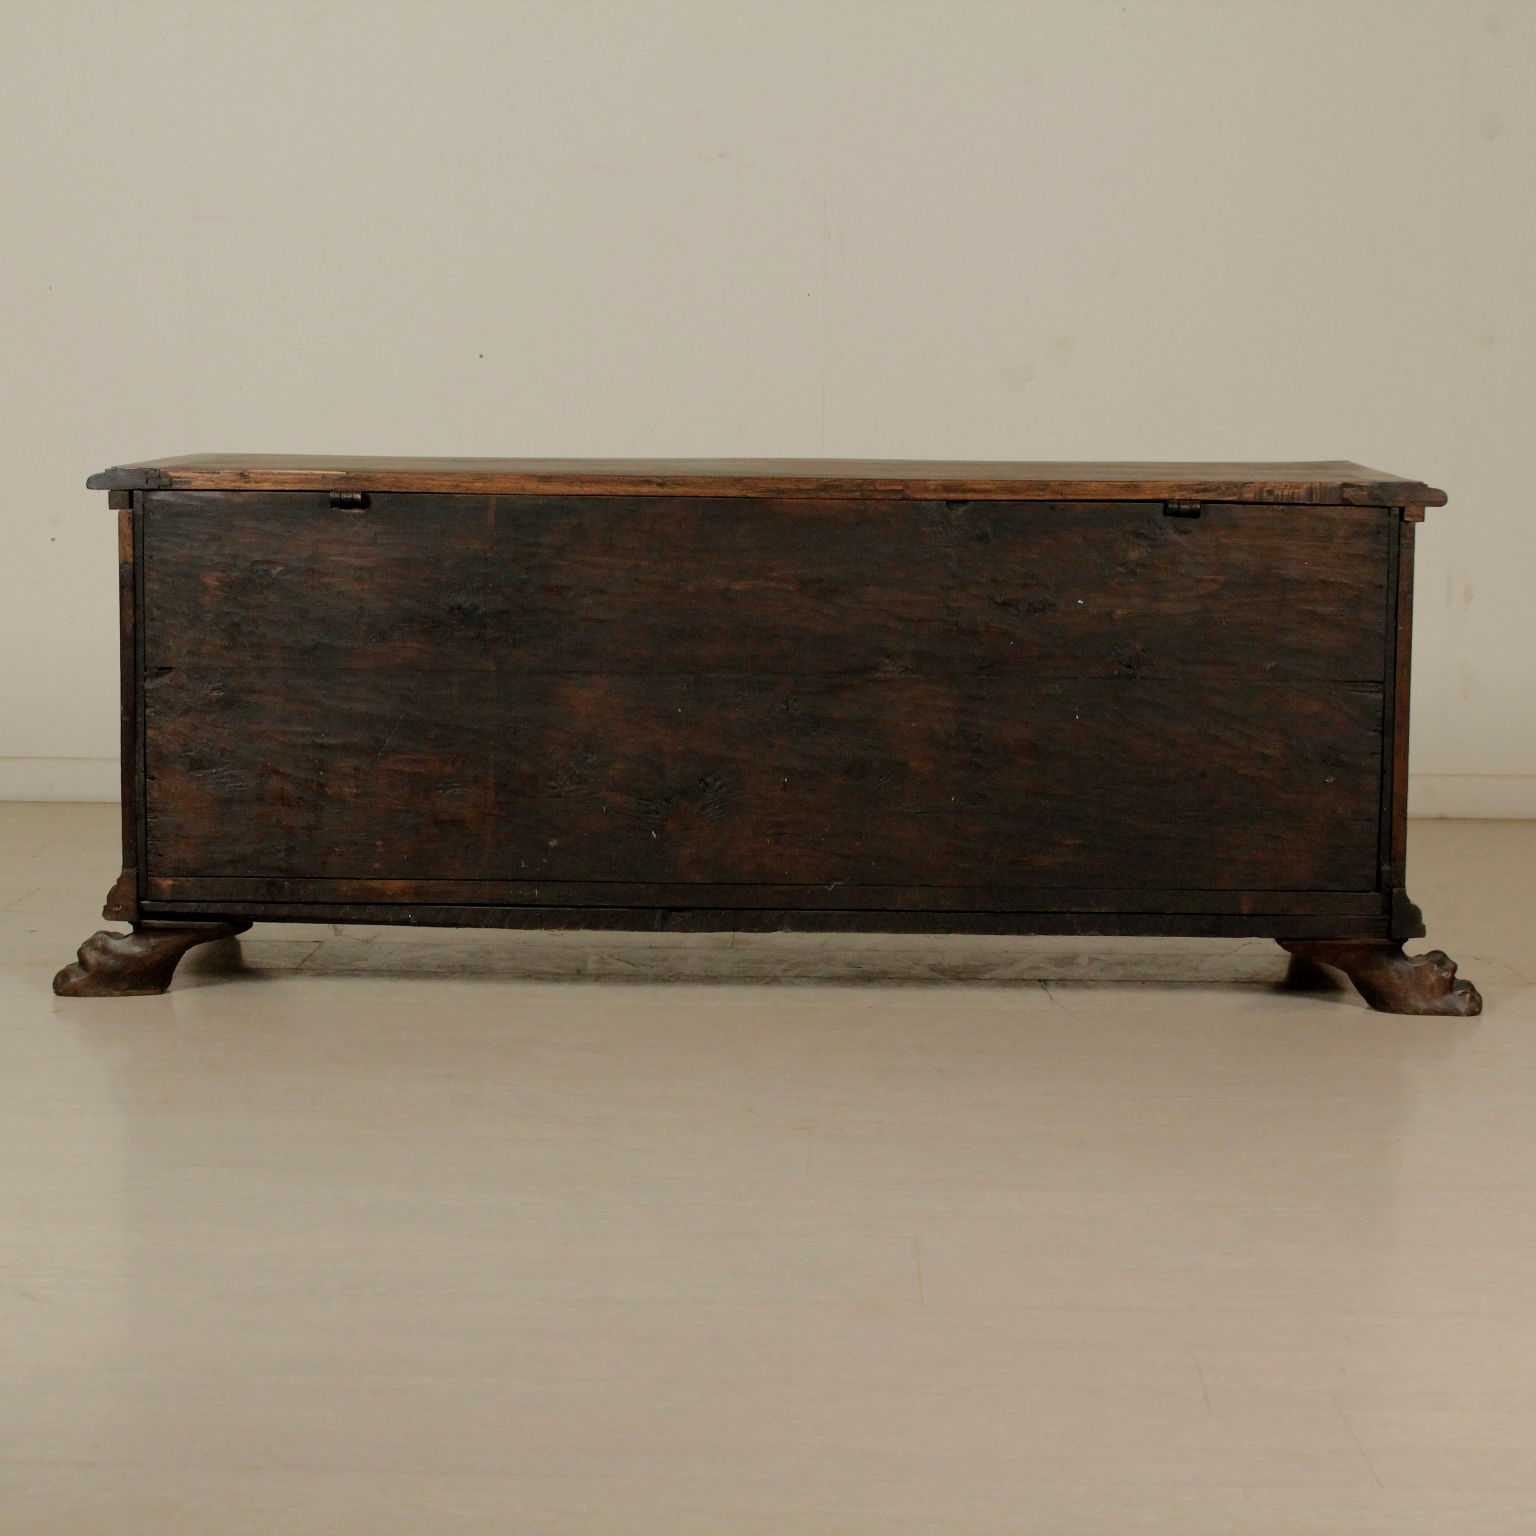 Storage Bench Antique Woods Other Furniture Antique Dimanoinmano It